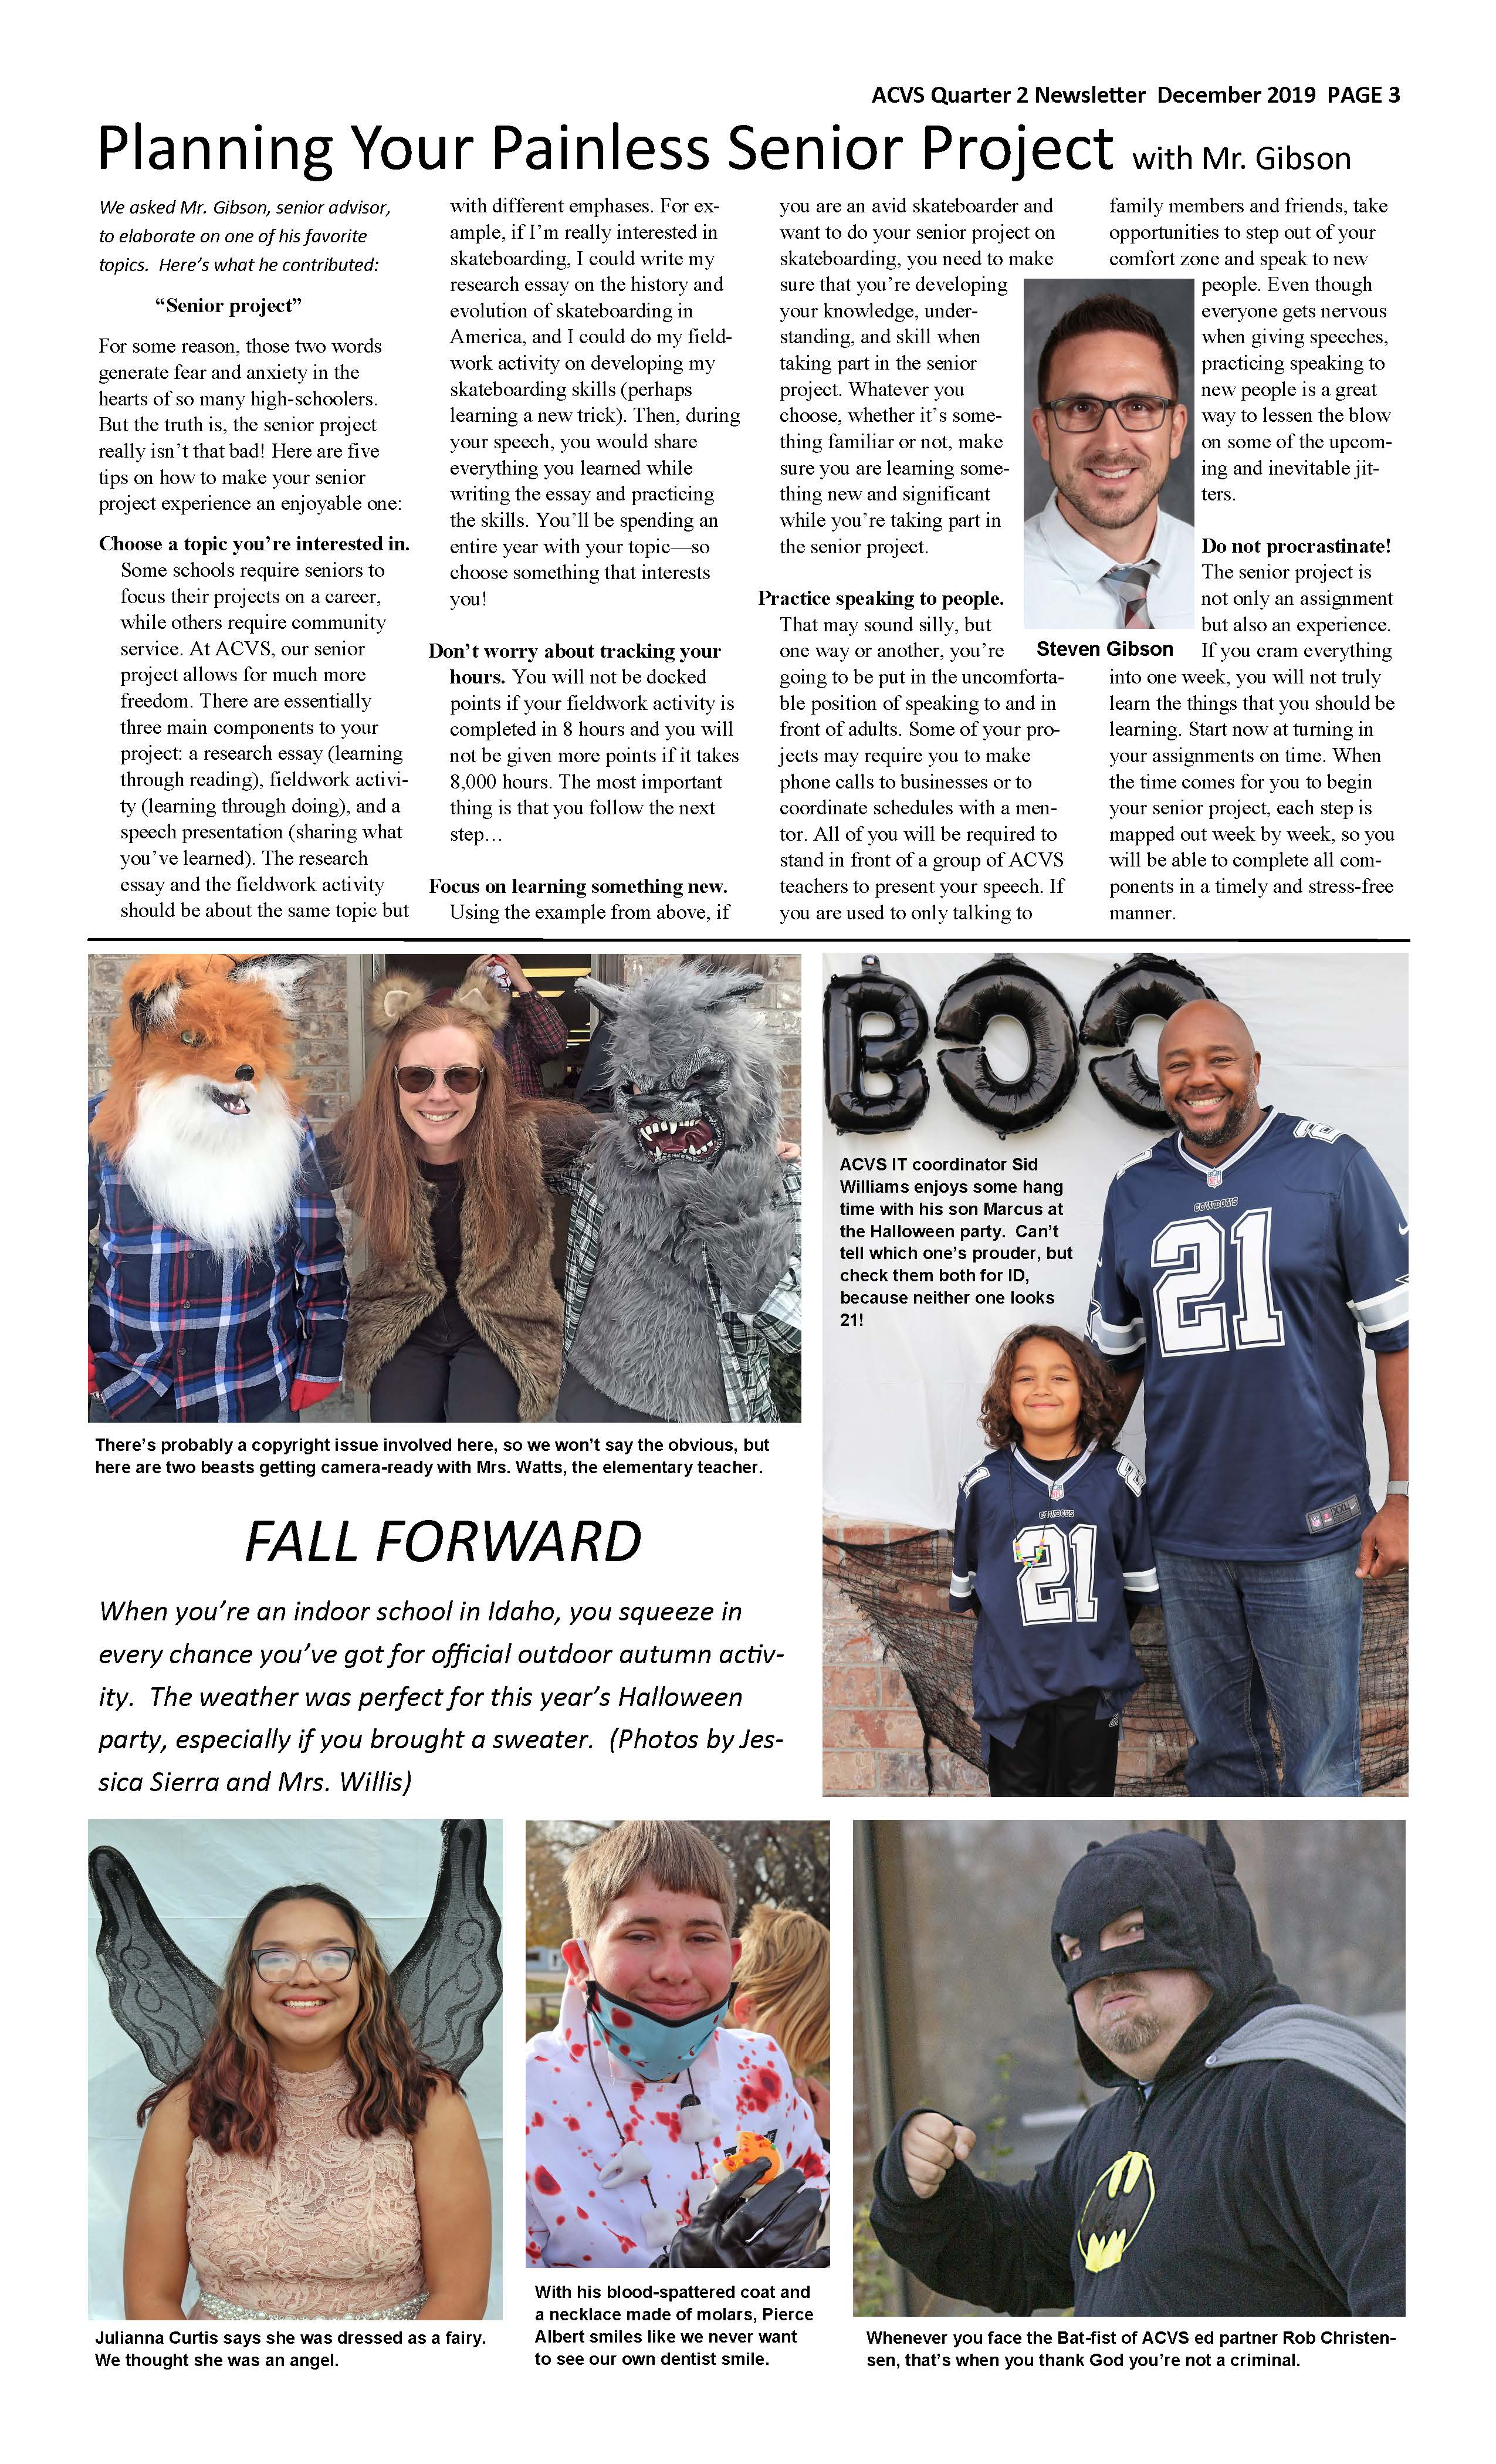 ACVS News Letter Page 3